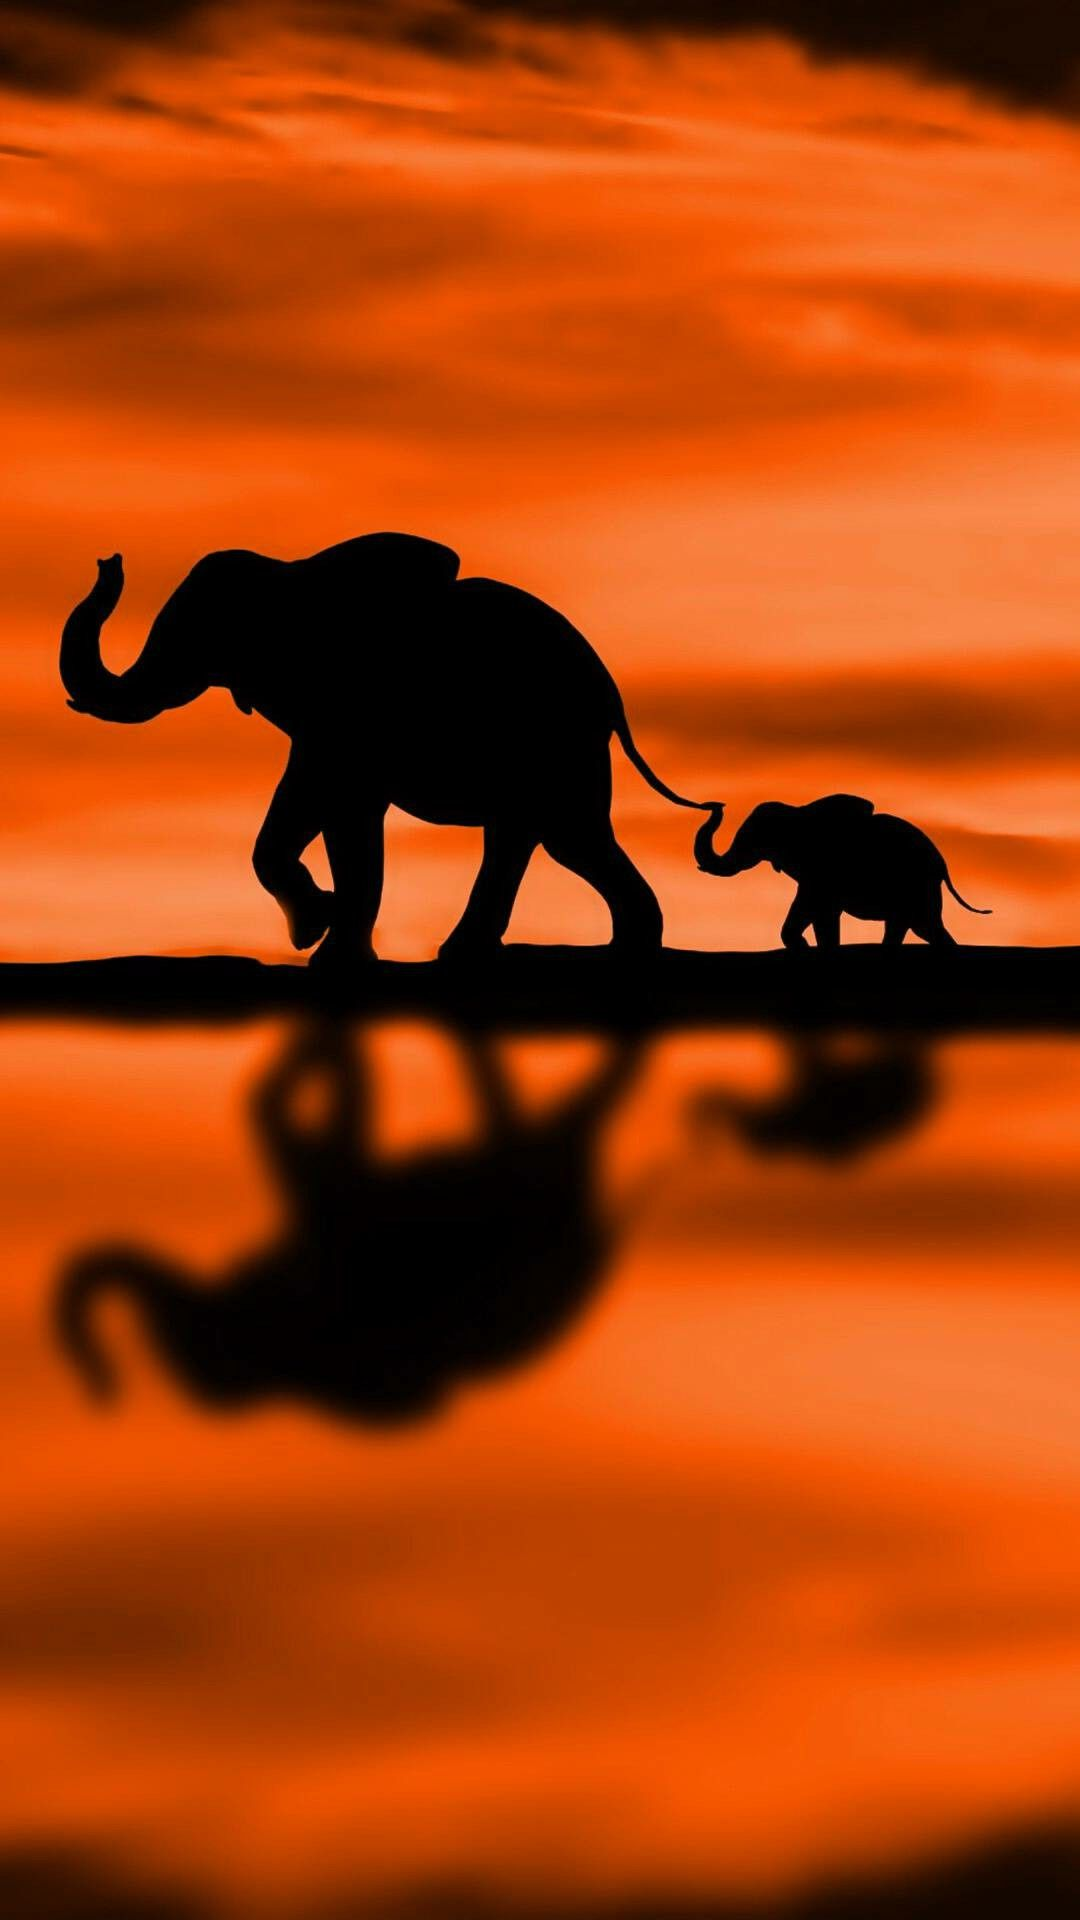 Baby Elephant Background : elephant, background, Elephant, Following, Mother, Beautiful, Orange, Background, Photography,, Silhouette, Painting,